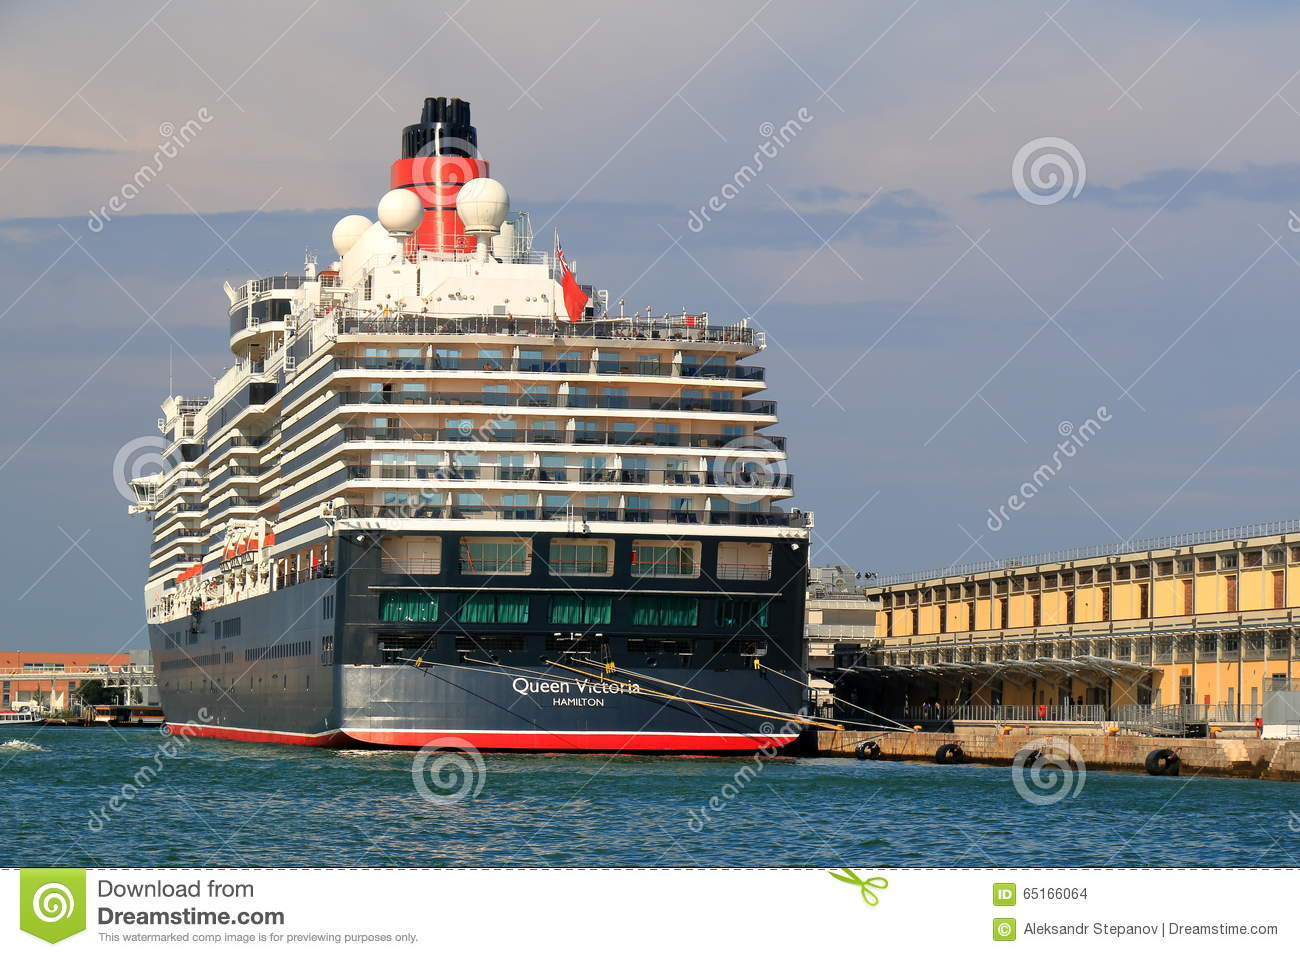 Moored Cruise Ship Queen Victoria In Port Of Venice Italy - Cruise ships in venice port